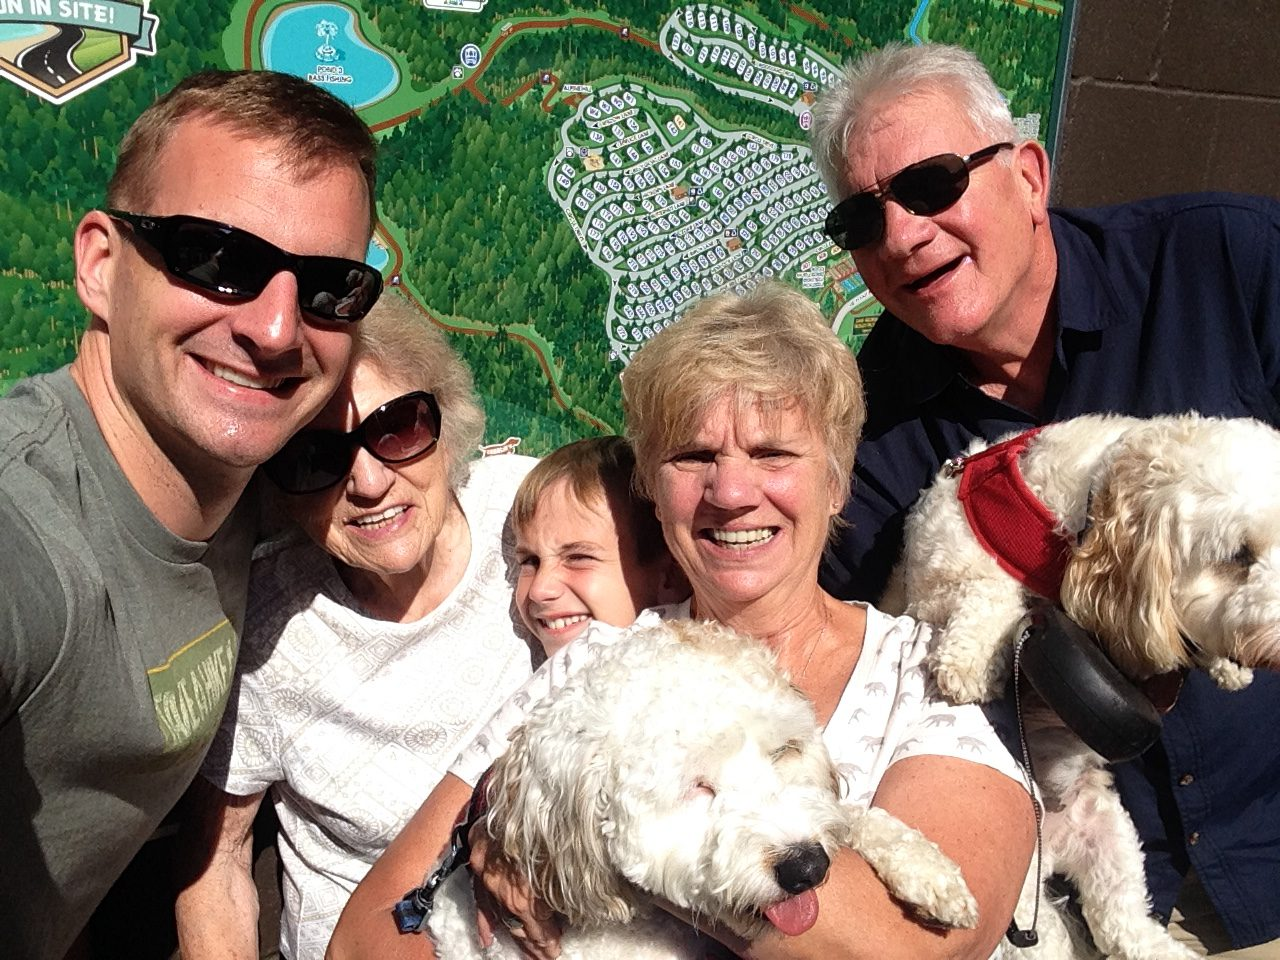 Family with dogs in front of map